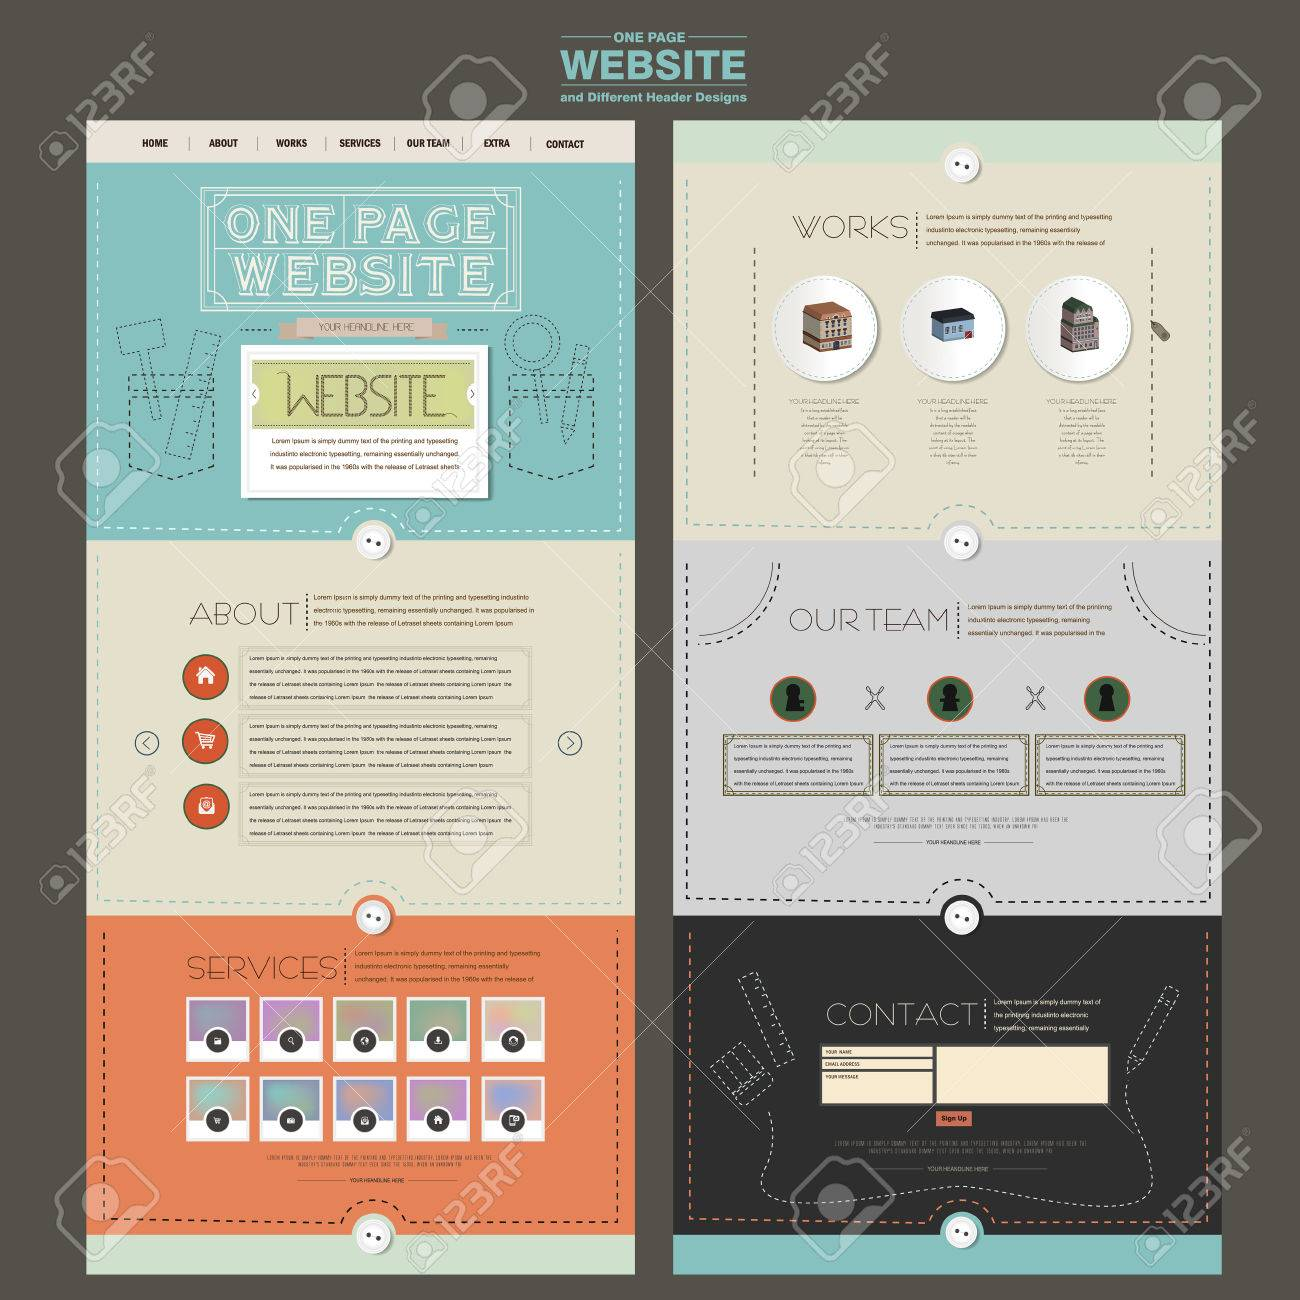 adorable one page website design template with sewing thread